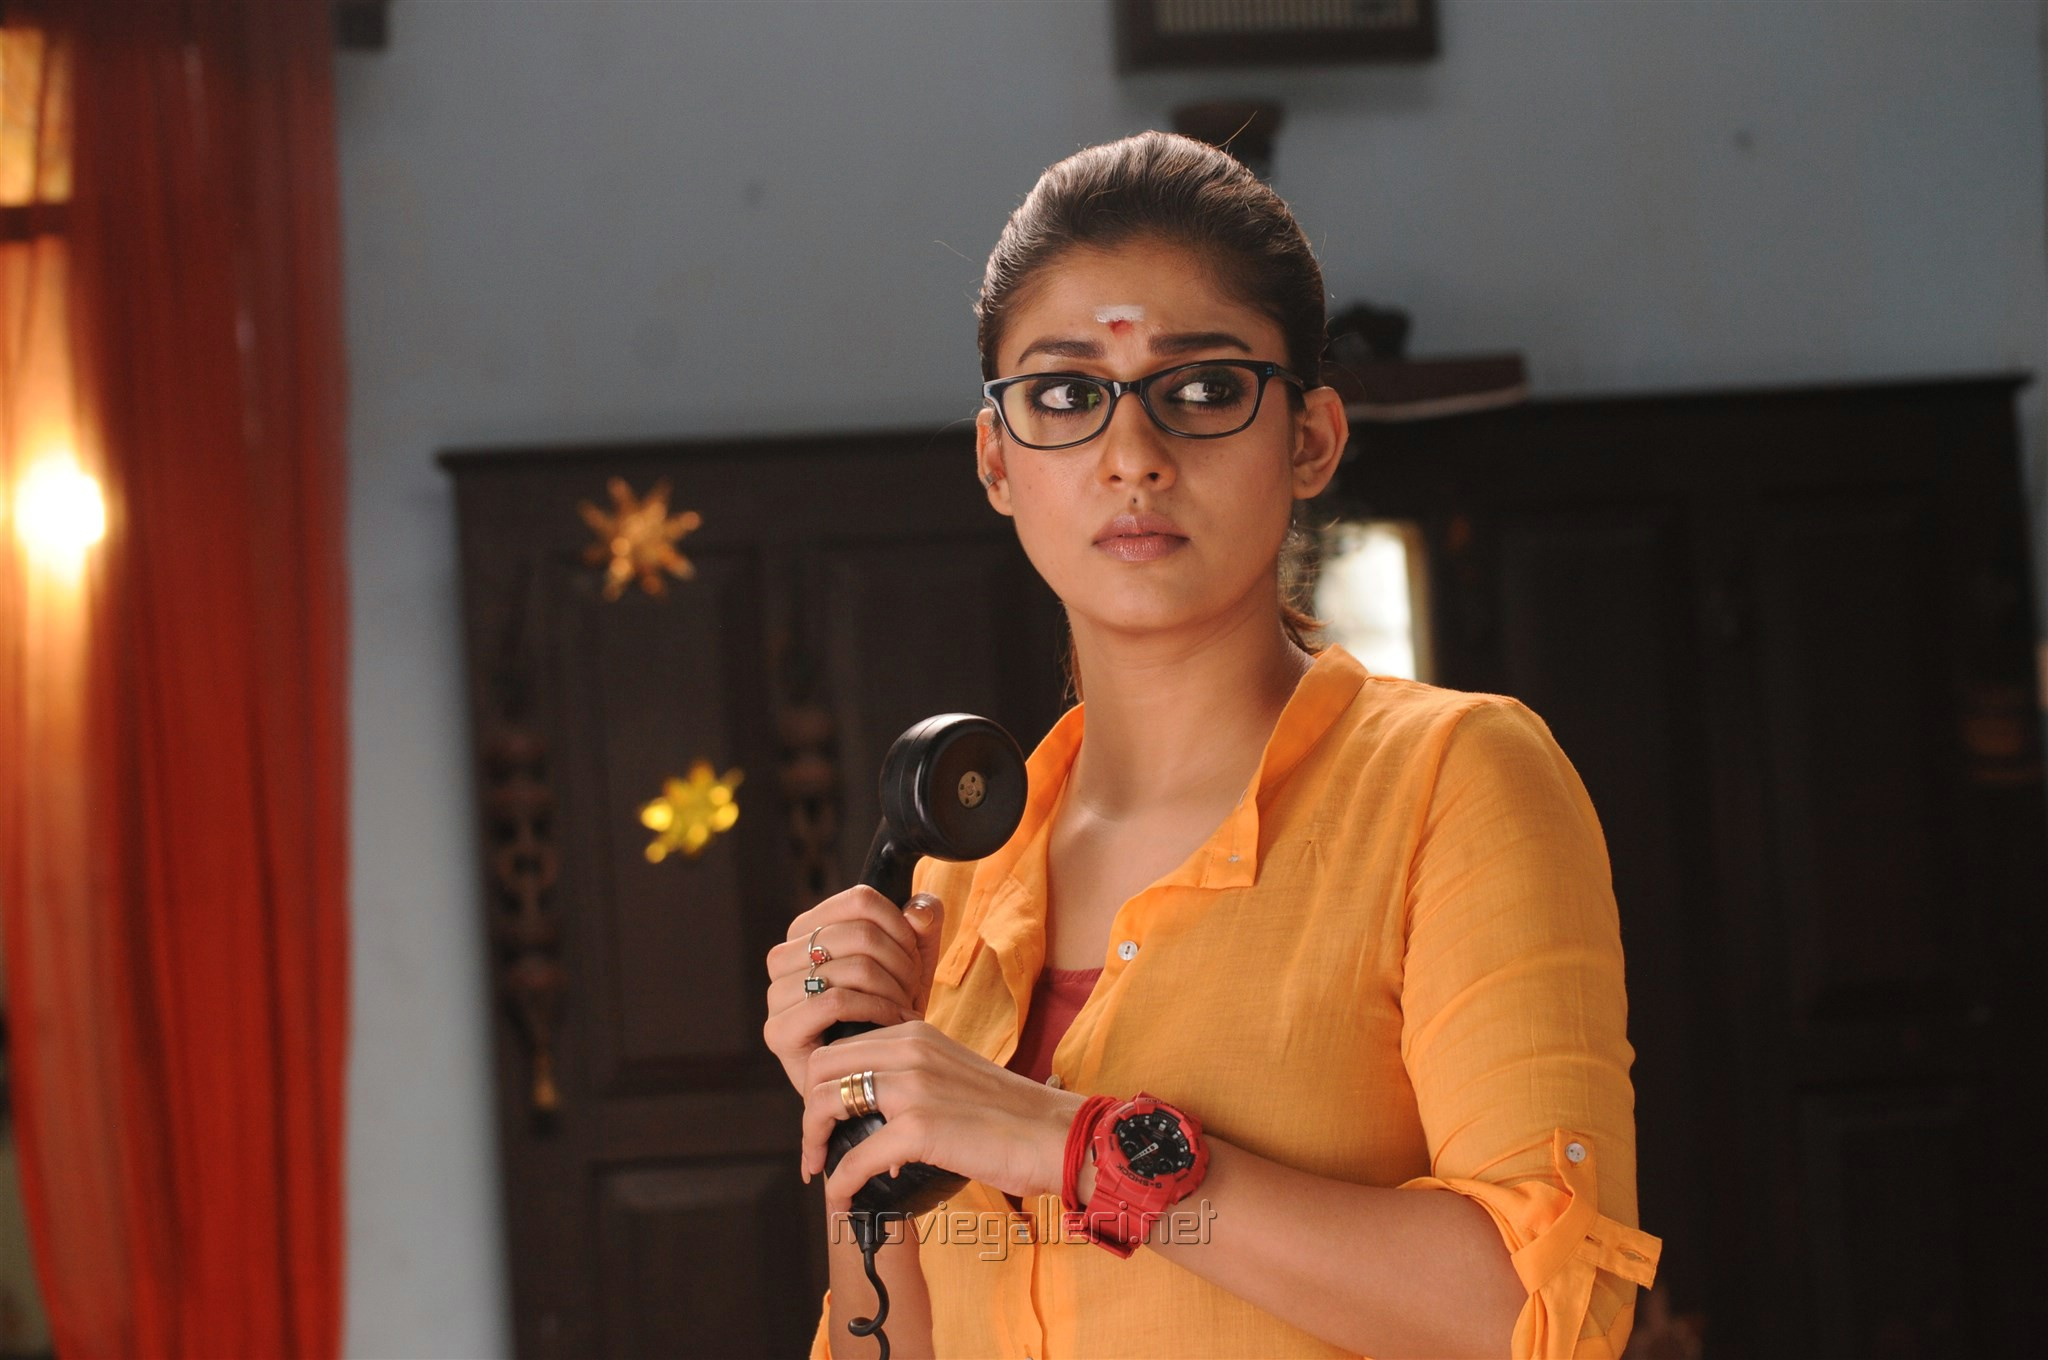 Download Nayantara HD wallpaper in Laptop